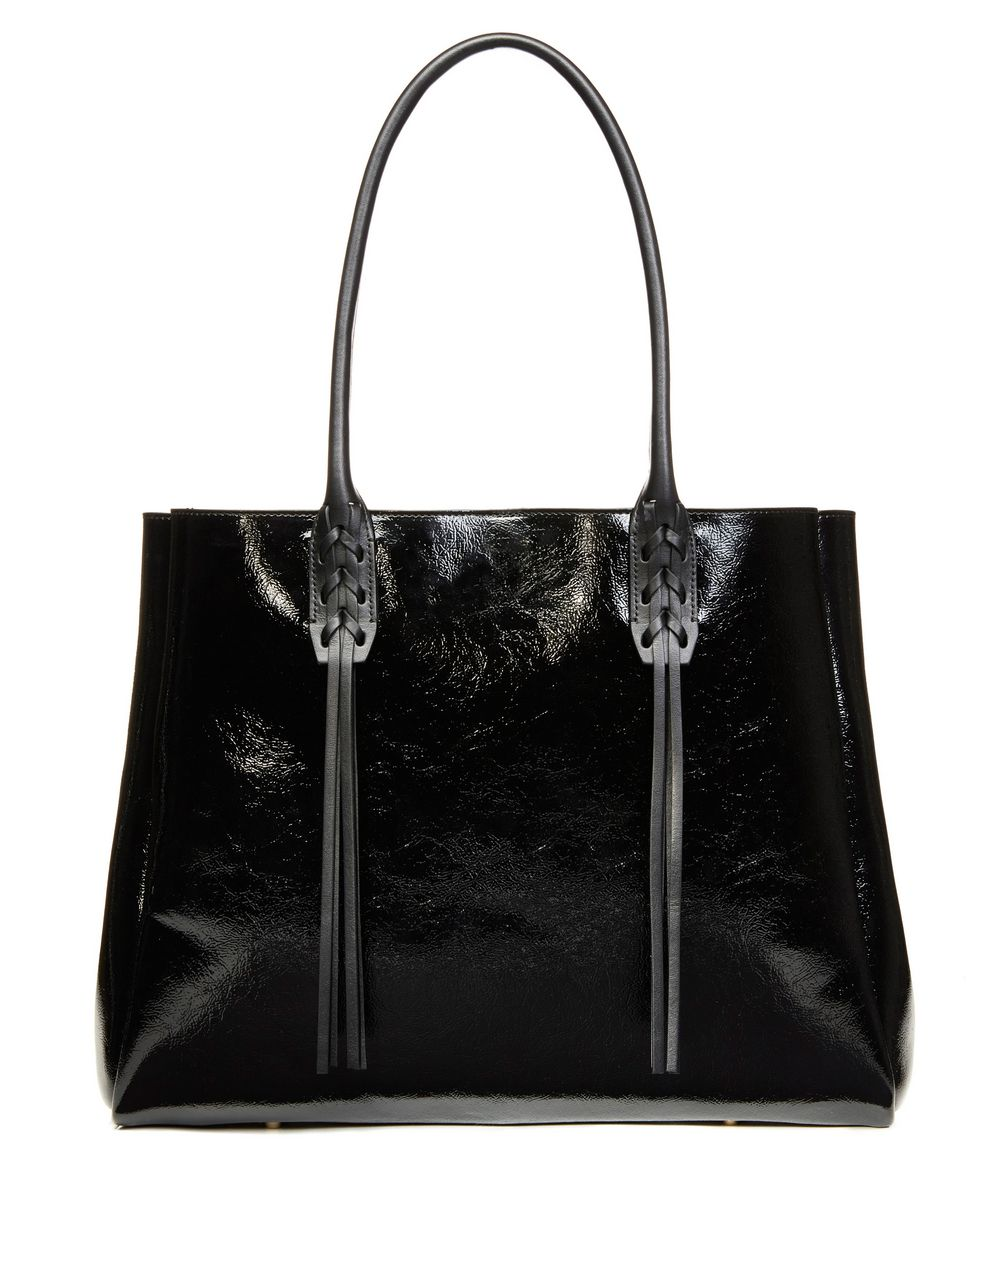 SMALL SHOPPER BAG - Lanvin